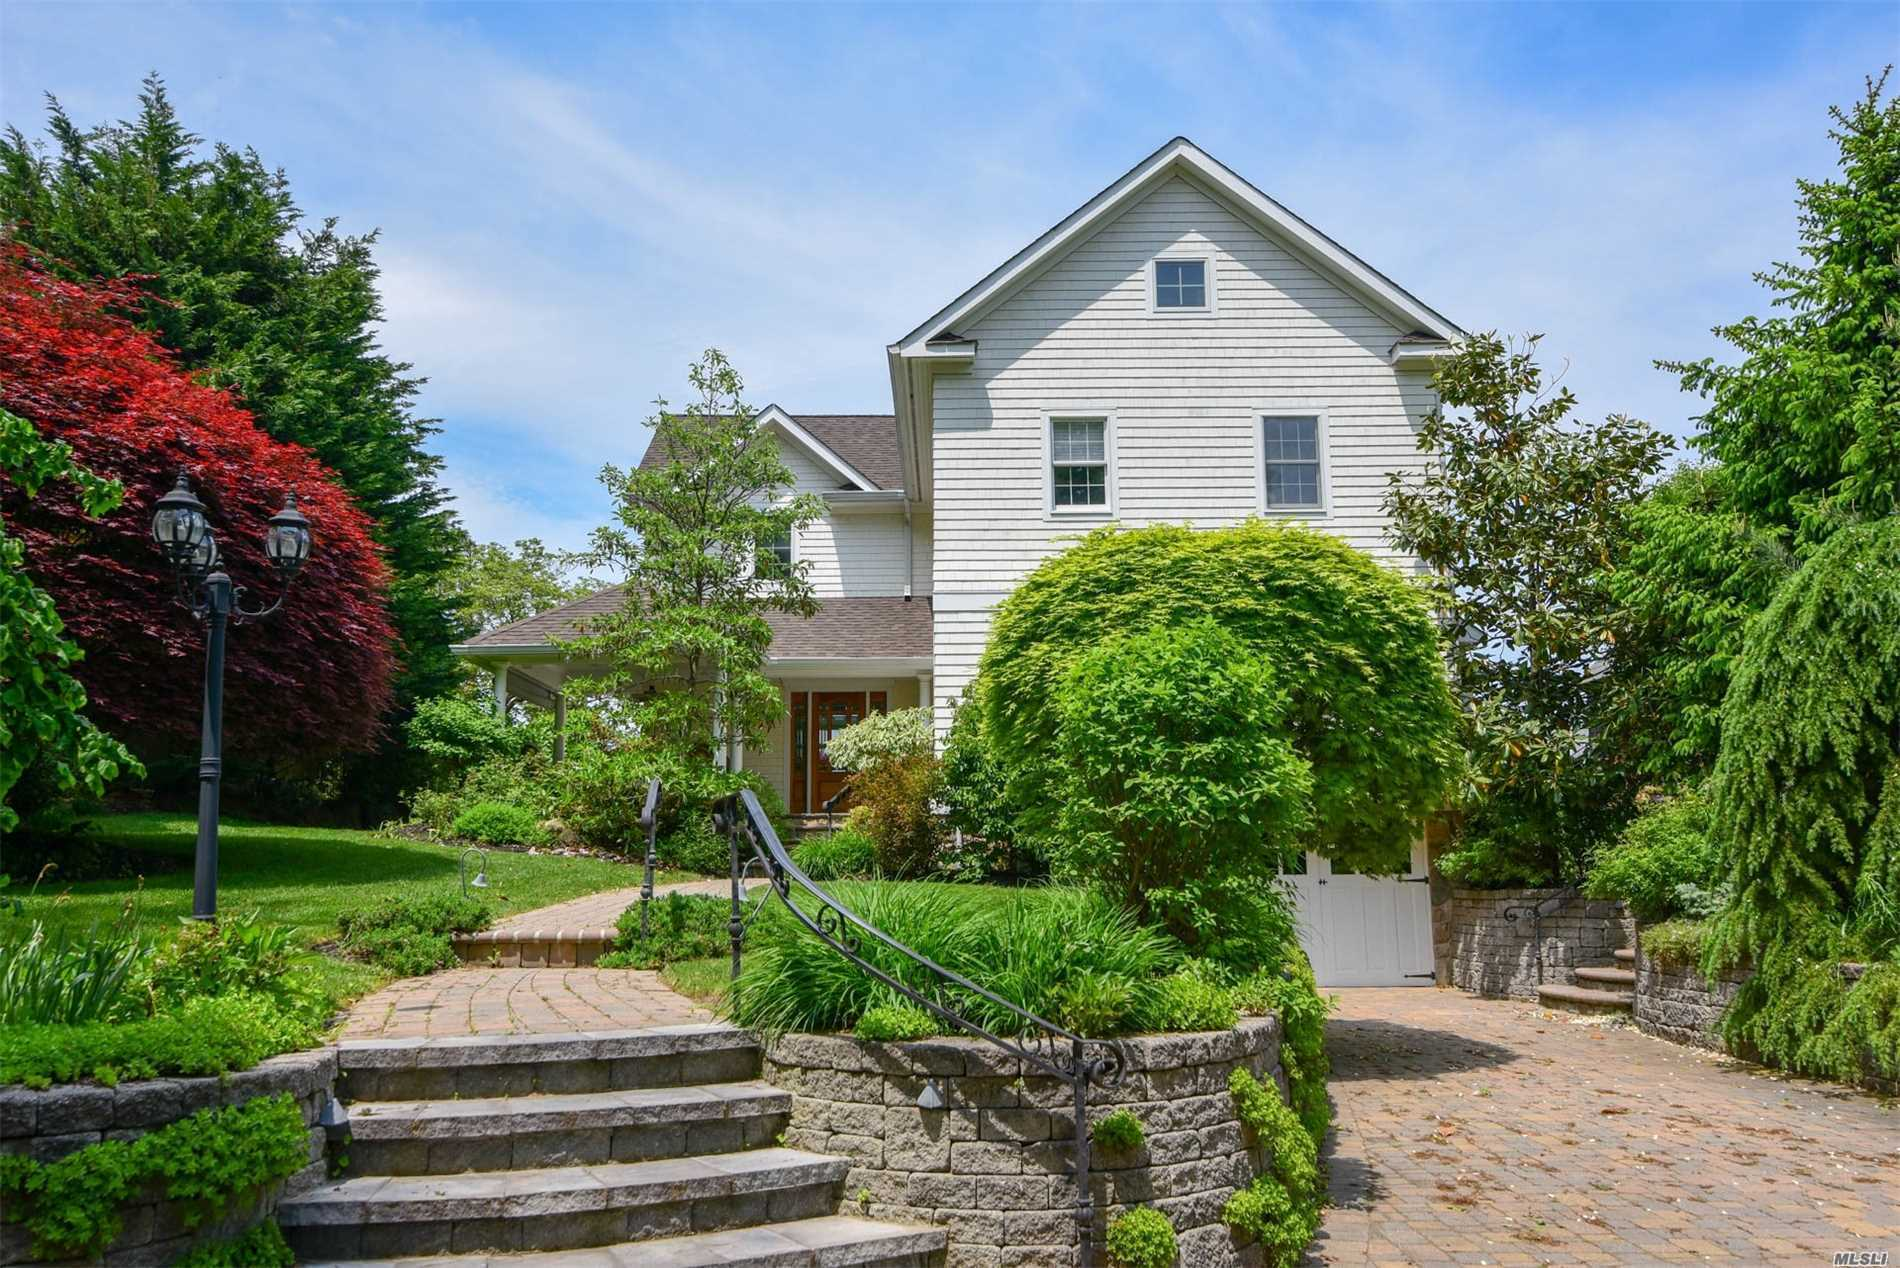 112 Waterview Dr - Miller Place, New York